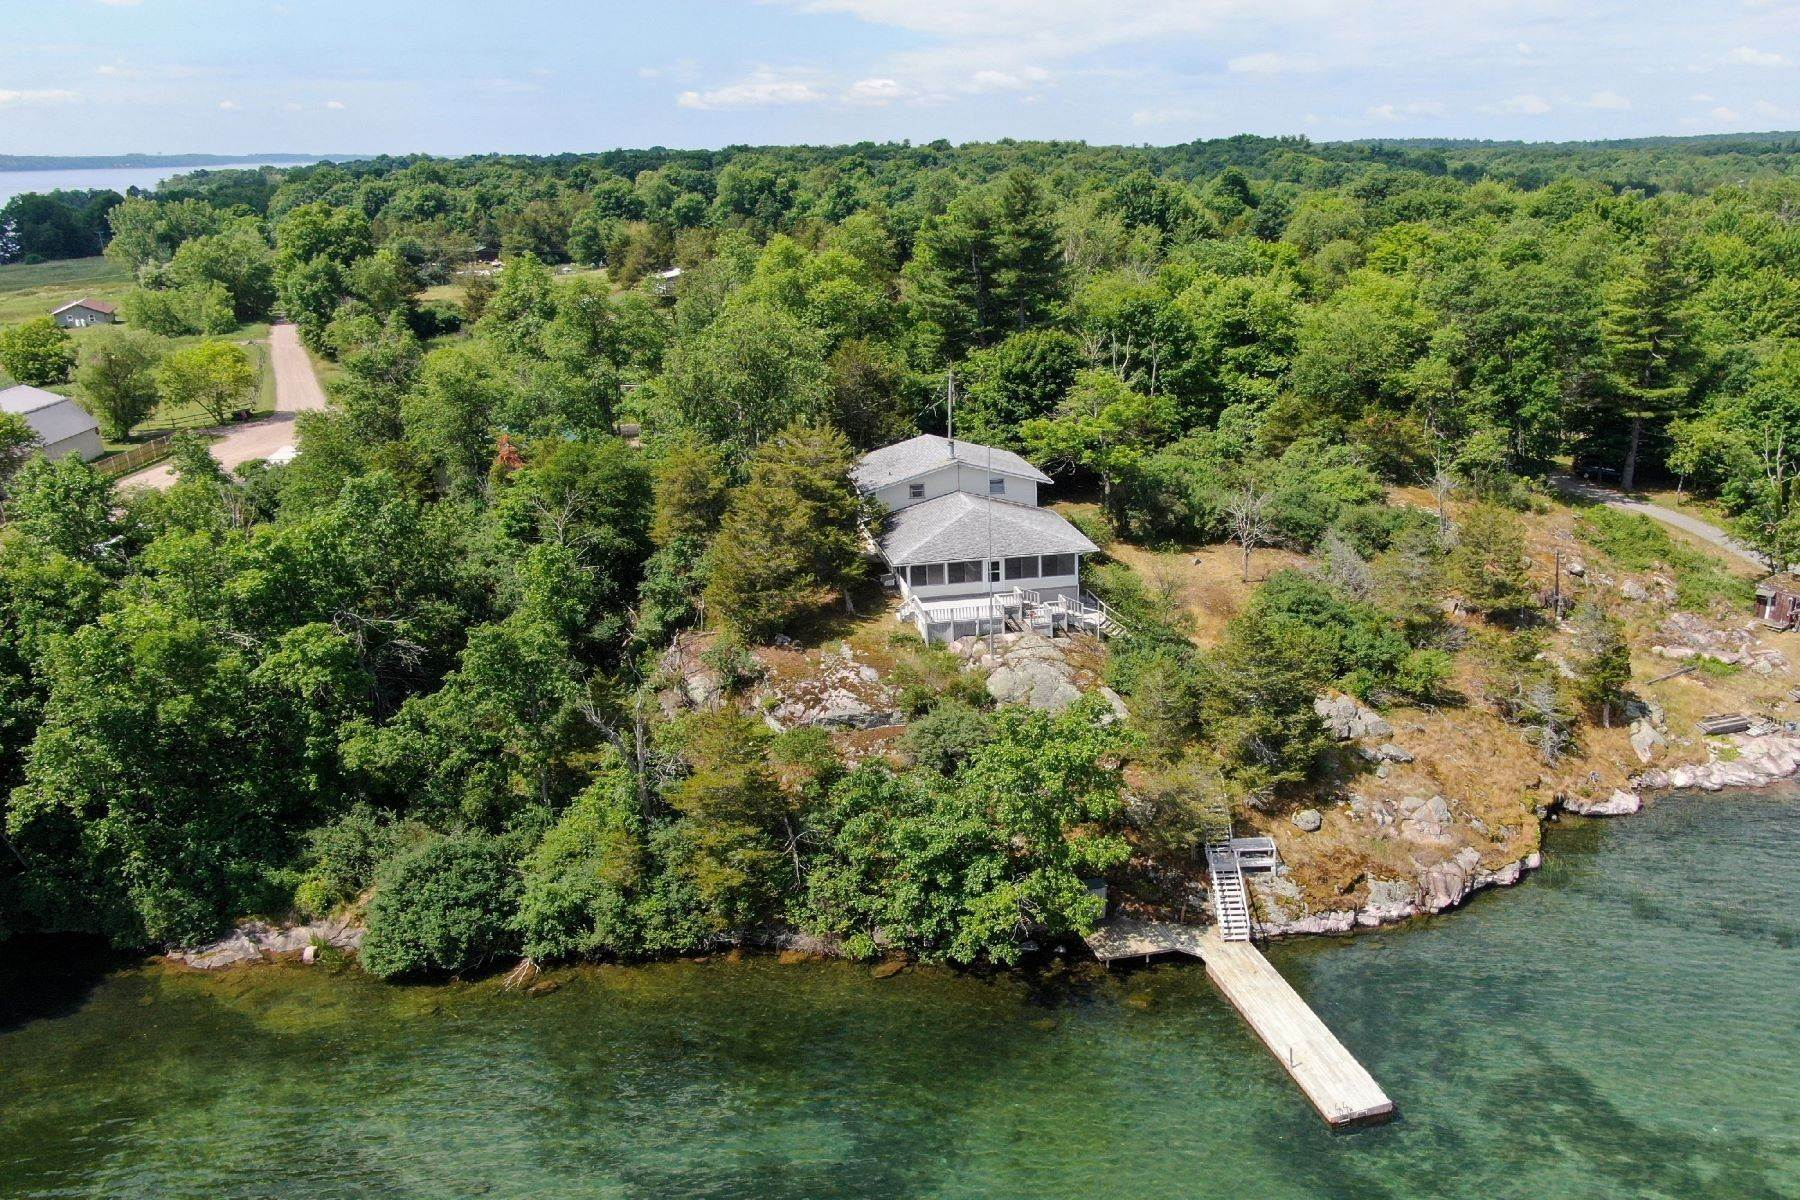 Single Family Homes for Sale at Panoramic Island Views 41100 Cross Island Road Clayton, New York 13624 United States